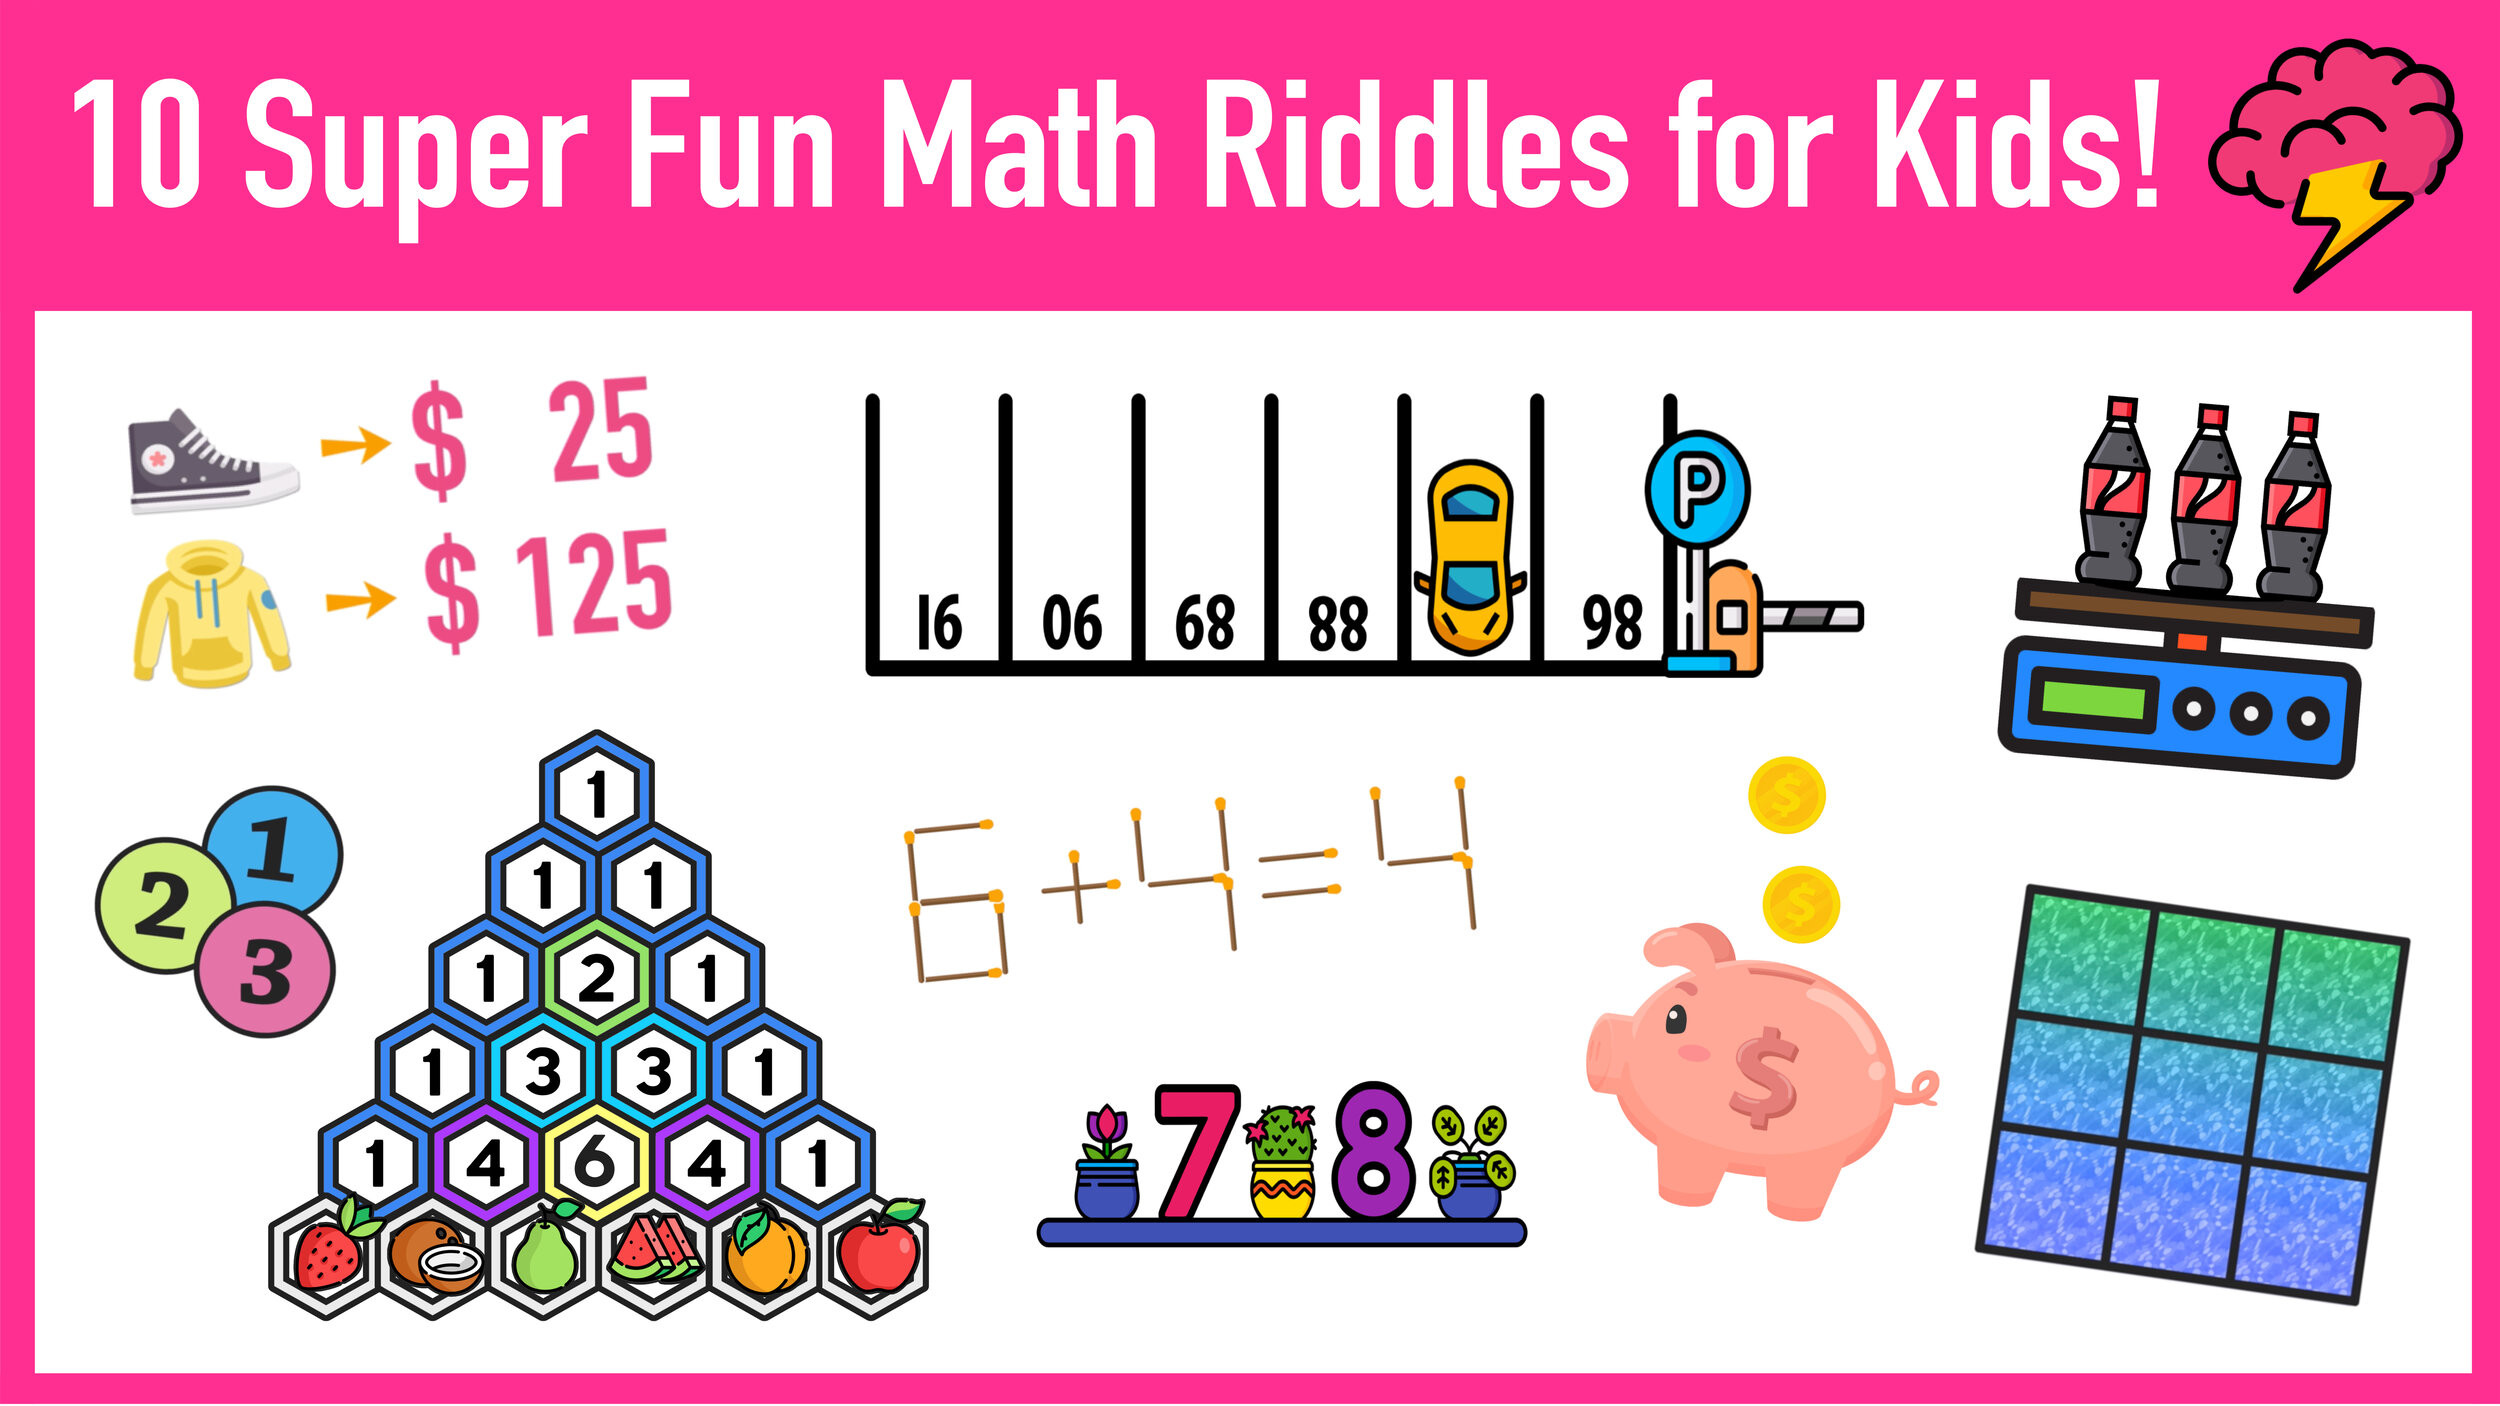 Middle School Math Puzzles Printable 10 Super Fun Math Riddles for Kids Ages 10 with Answers